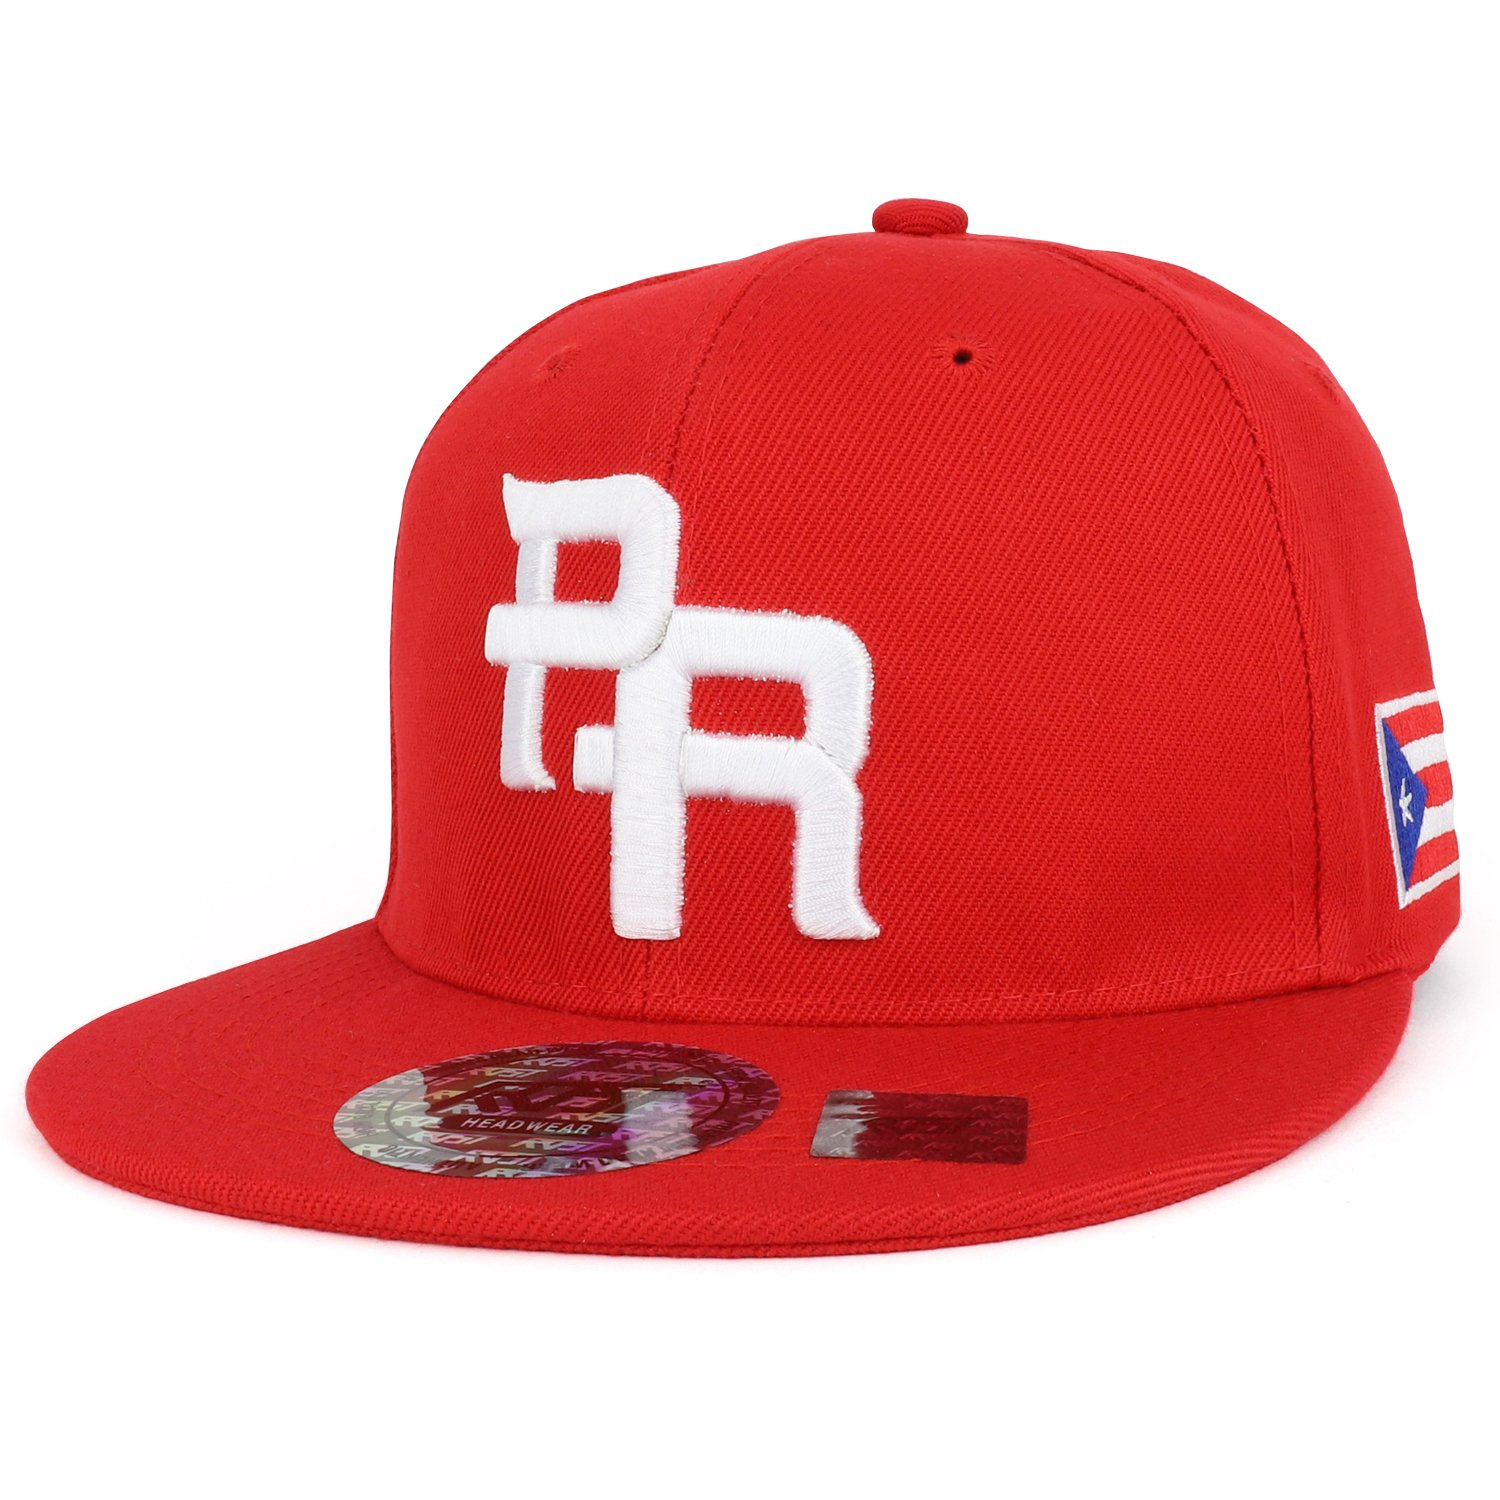 85bdfcbb5d441 Trendy Apparel Shop PR 3D Embroidered Flatbill Snapback Cap with Puerto  Rico Flag - RED RED